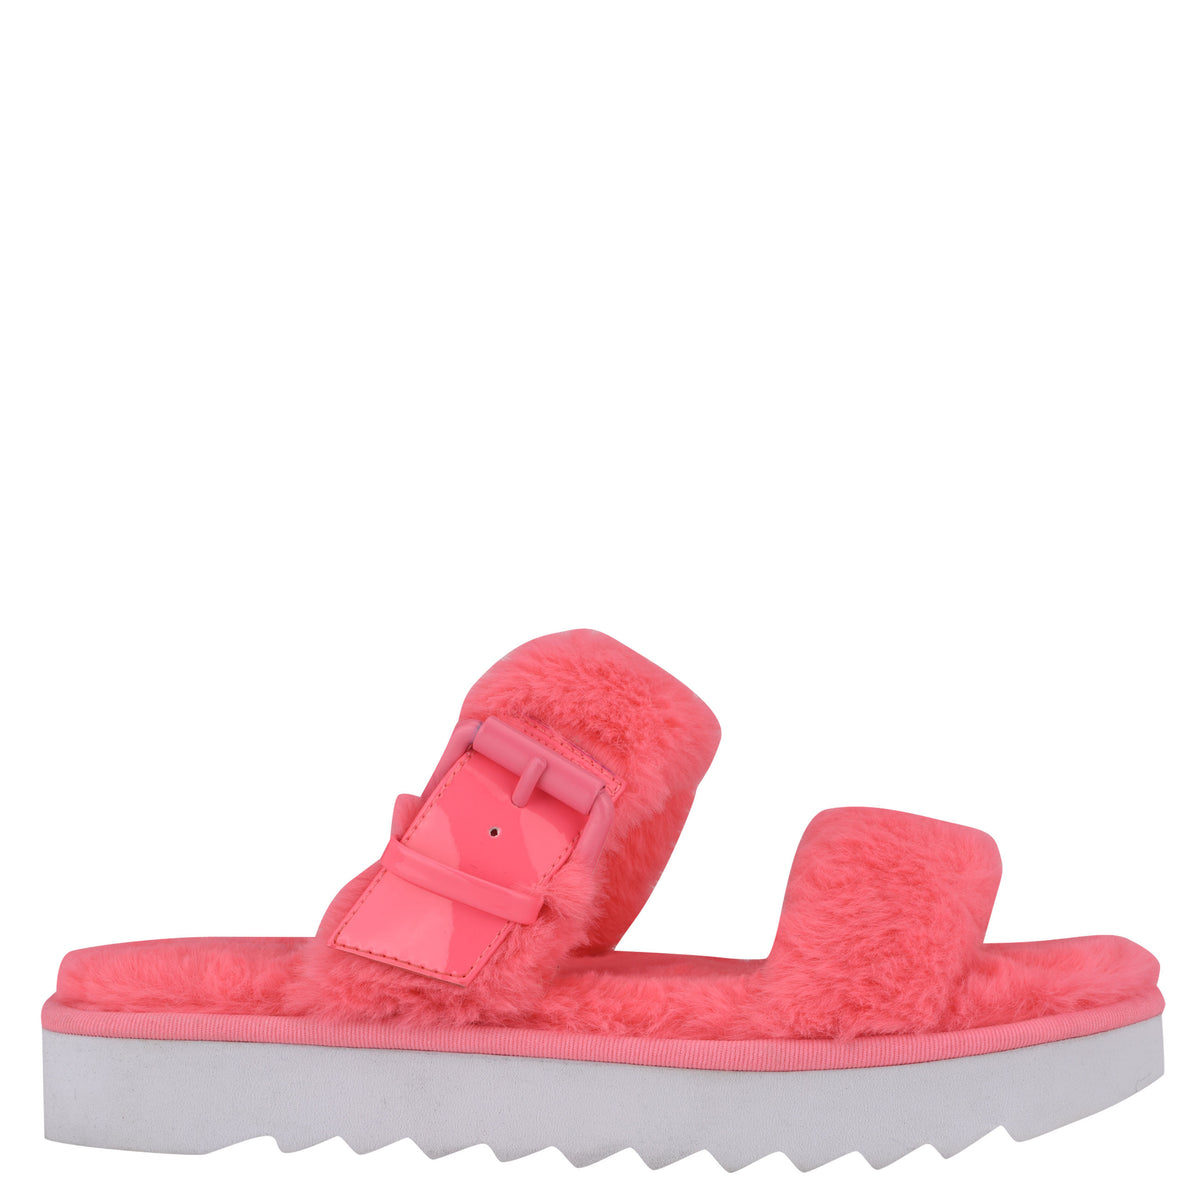 Funkie Cozy Flat Slide Sandals